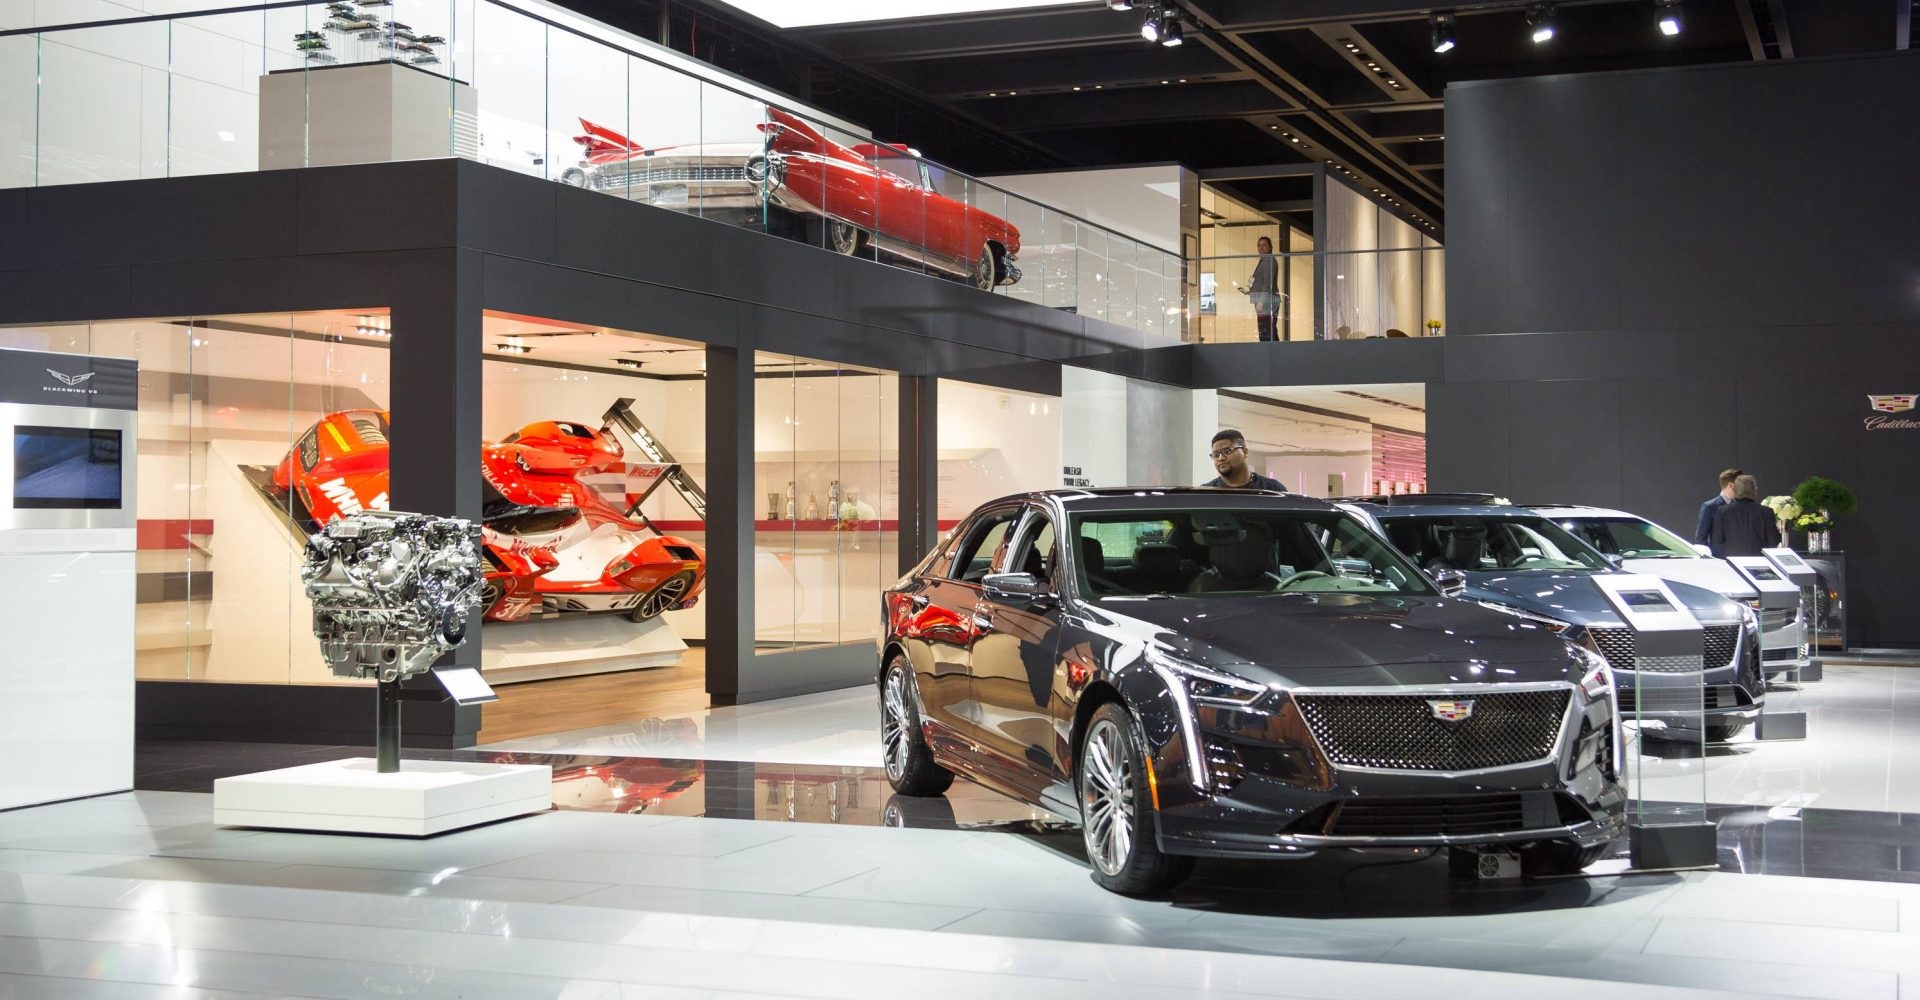 2021 Detroit motor show cancelled and replaced with six-day outdoor event